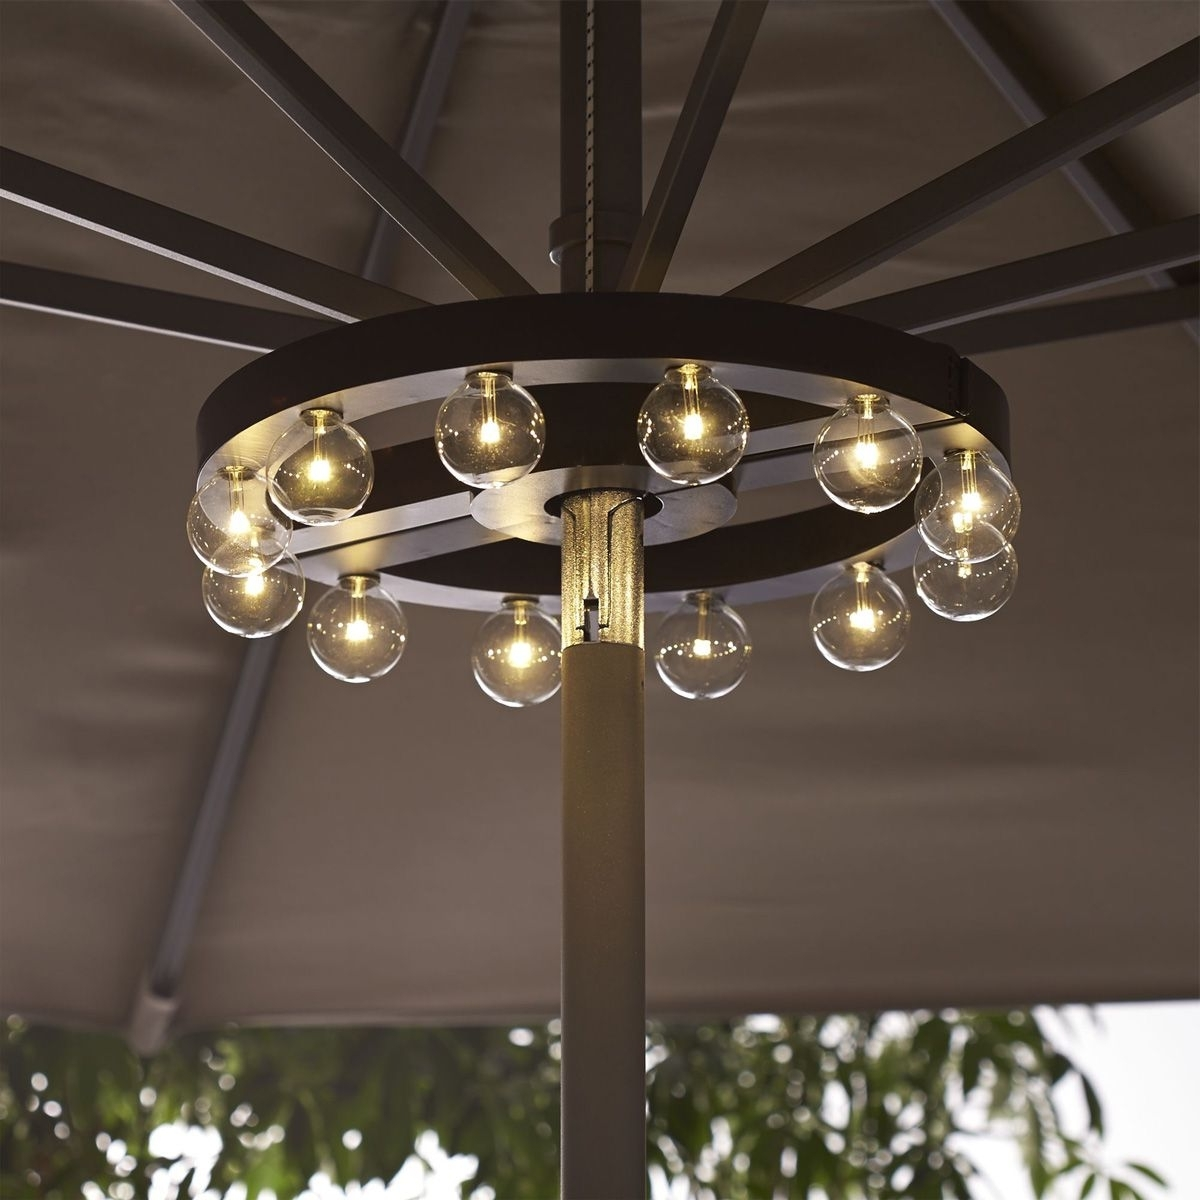 Get Outside For The Summer With Favorite Patio Umbrellas With Lights (Gallery 3 of 20)